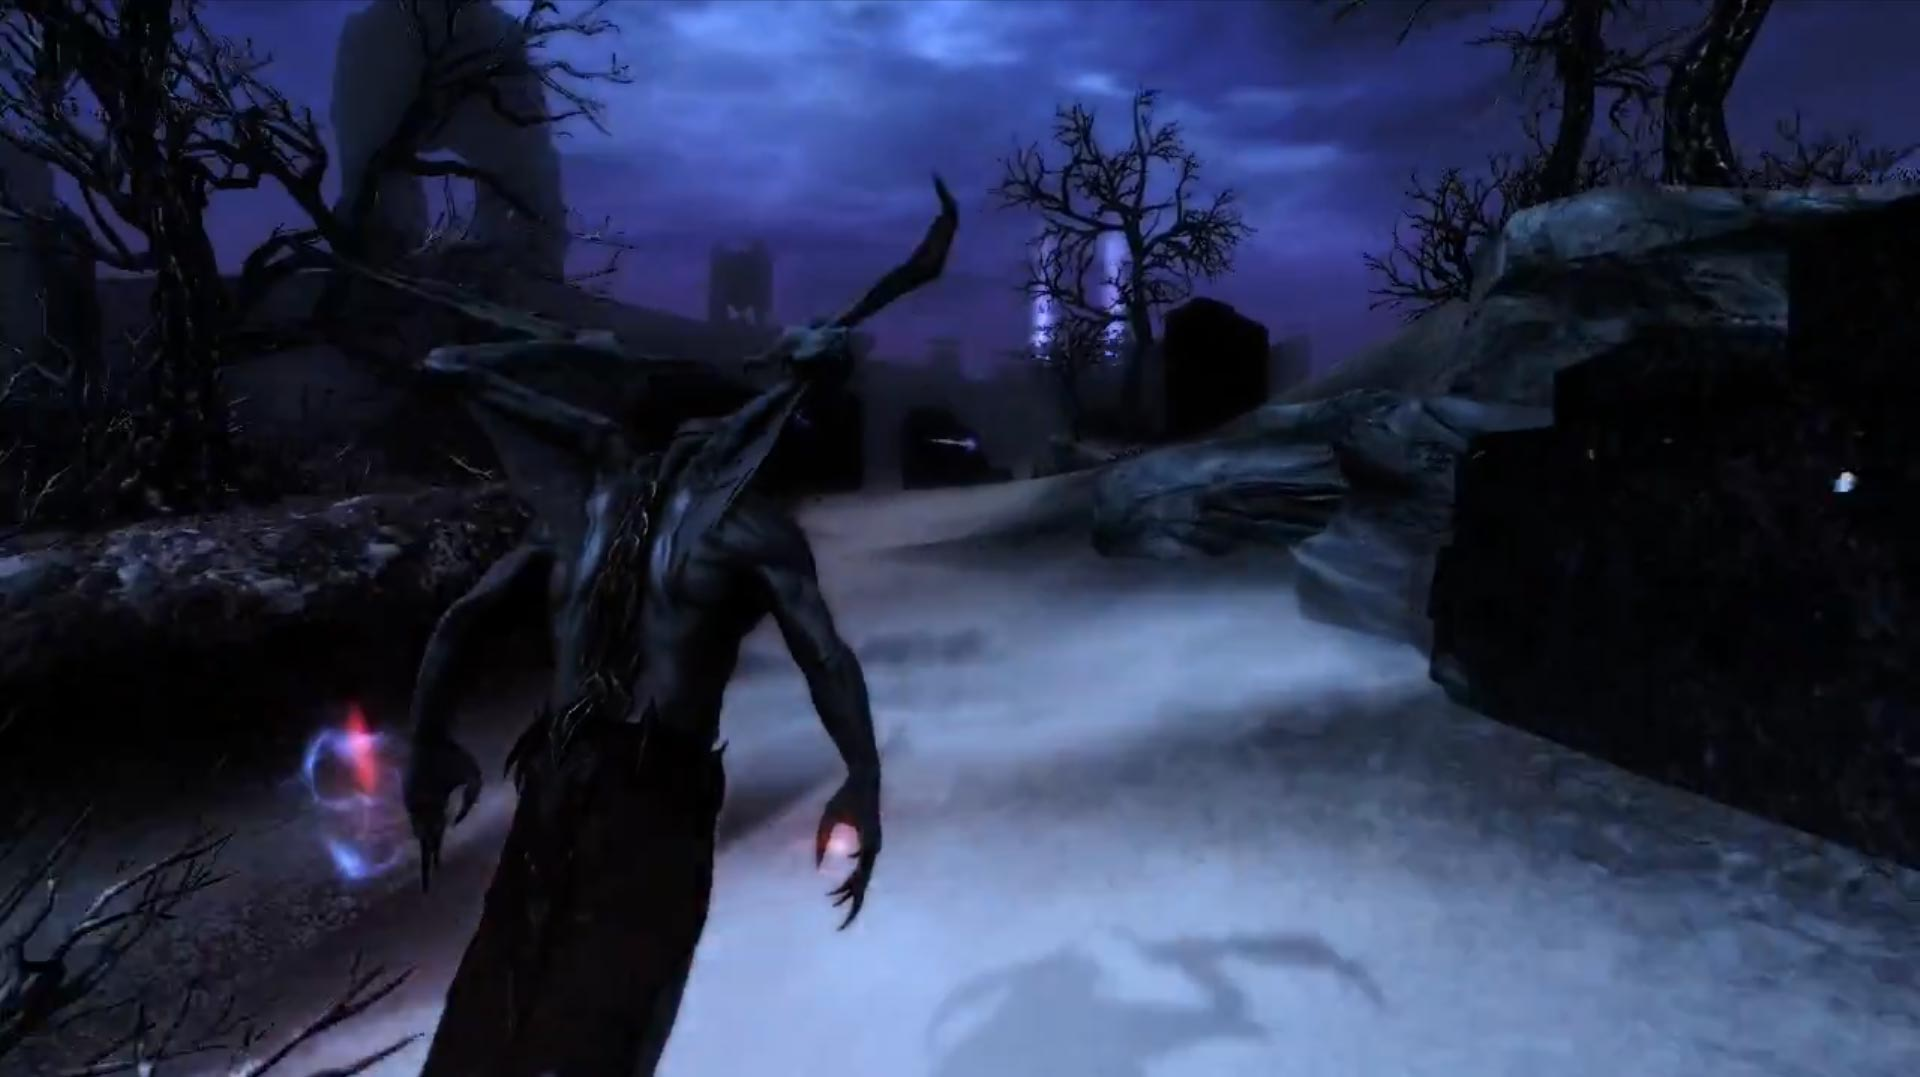 skyrim how to become vampire lord after dawnguard